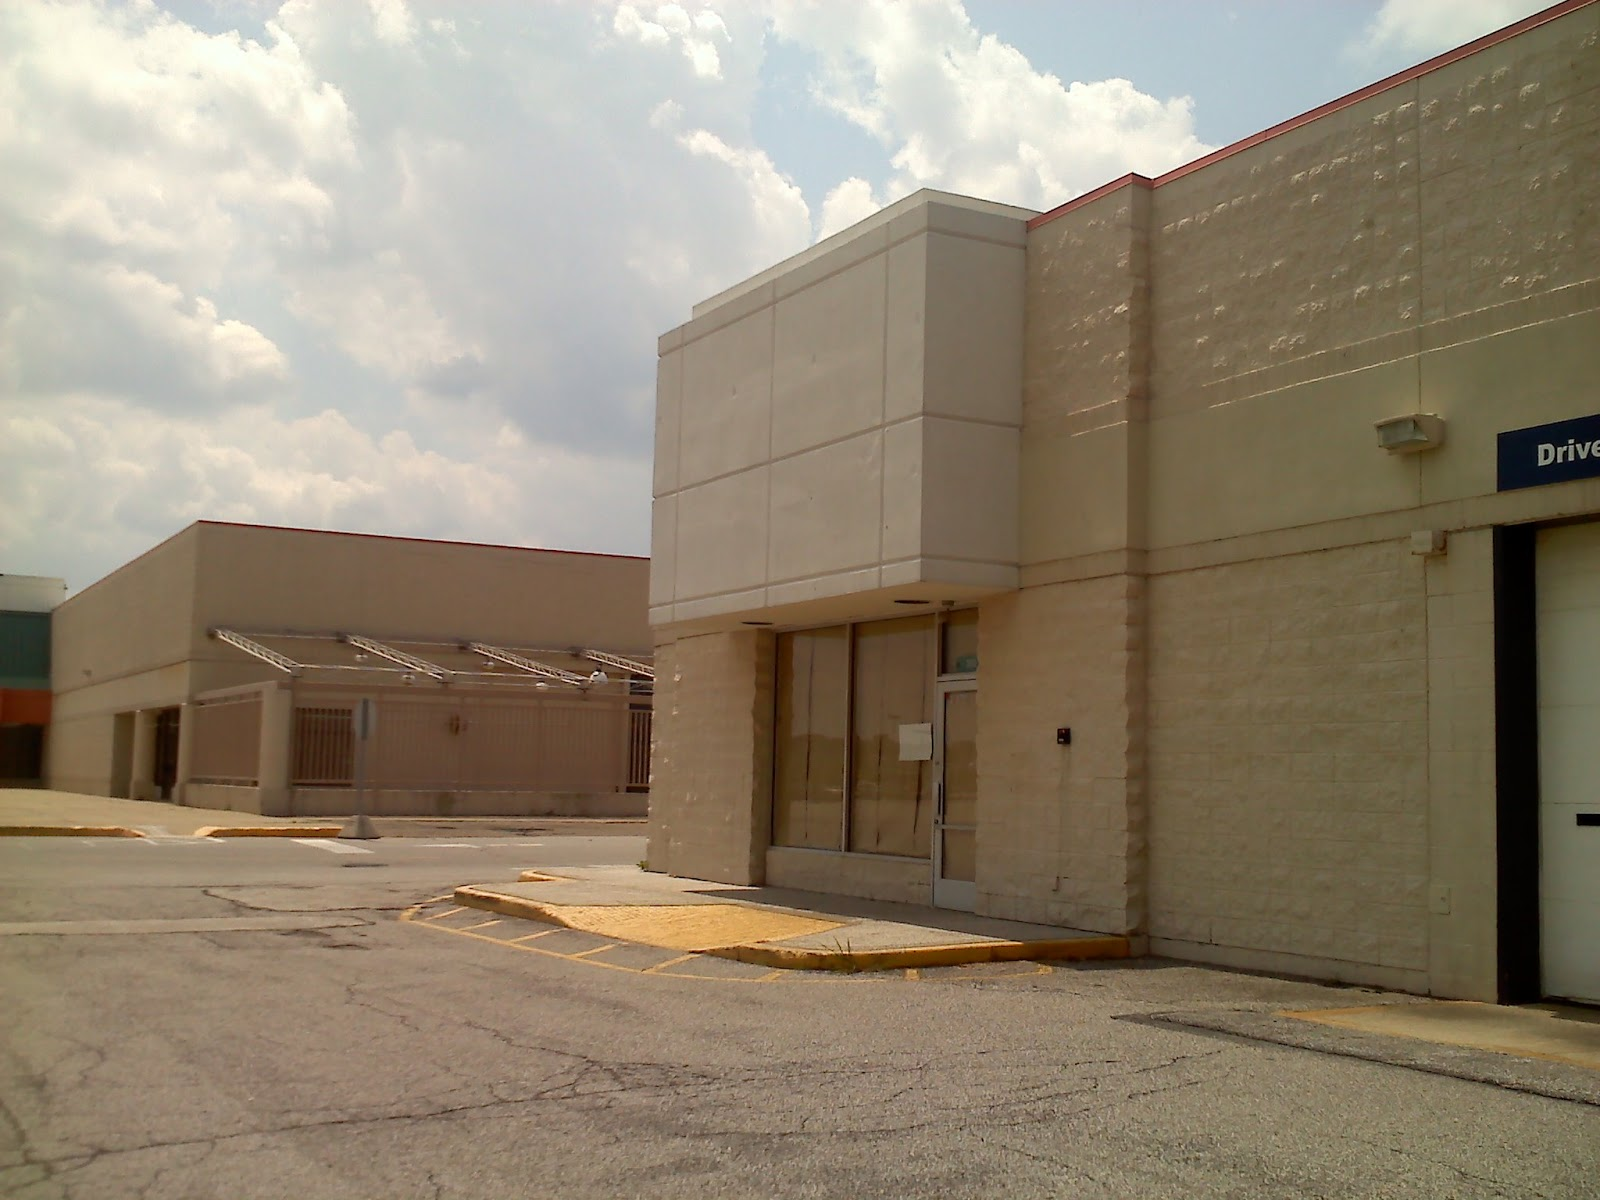 Dead And Dying Retail Closed Super Kmart Stores In Ohio